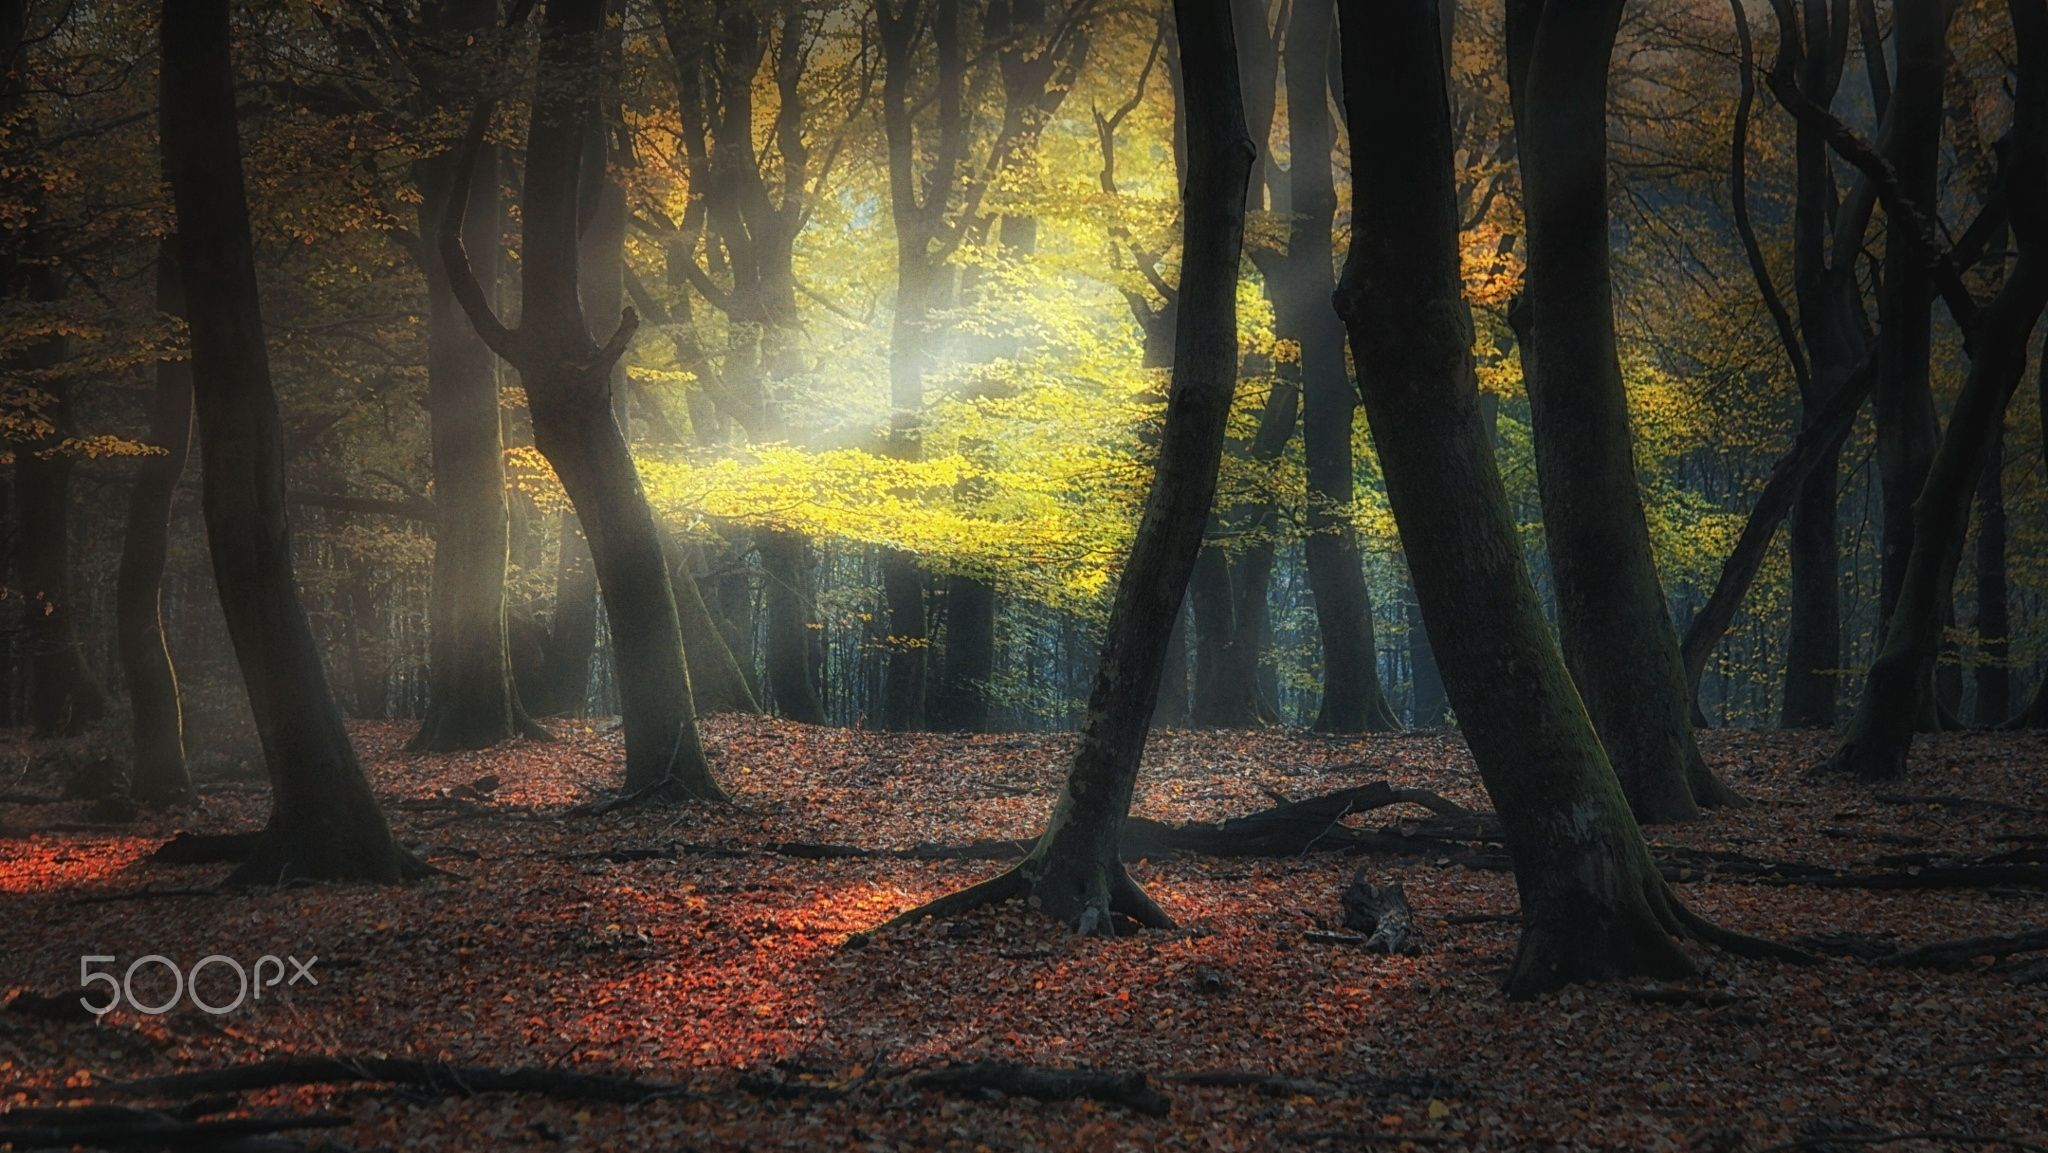 Trees dancing in the light - Thanks so much for visiting and voting. Press M